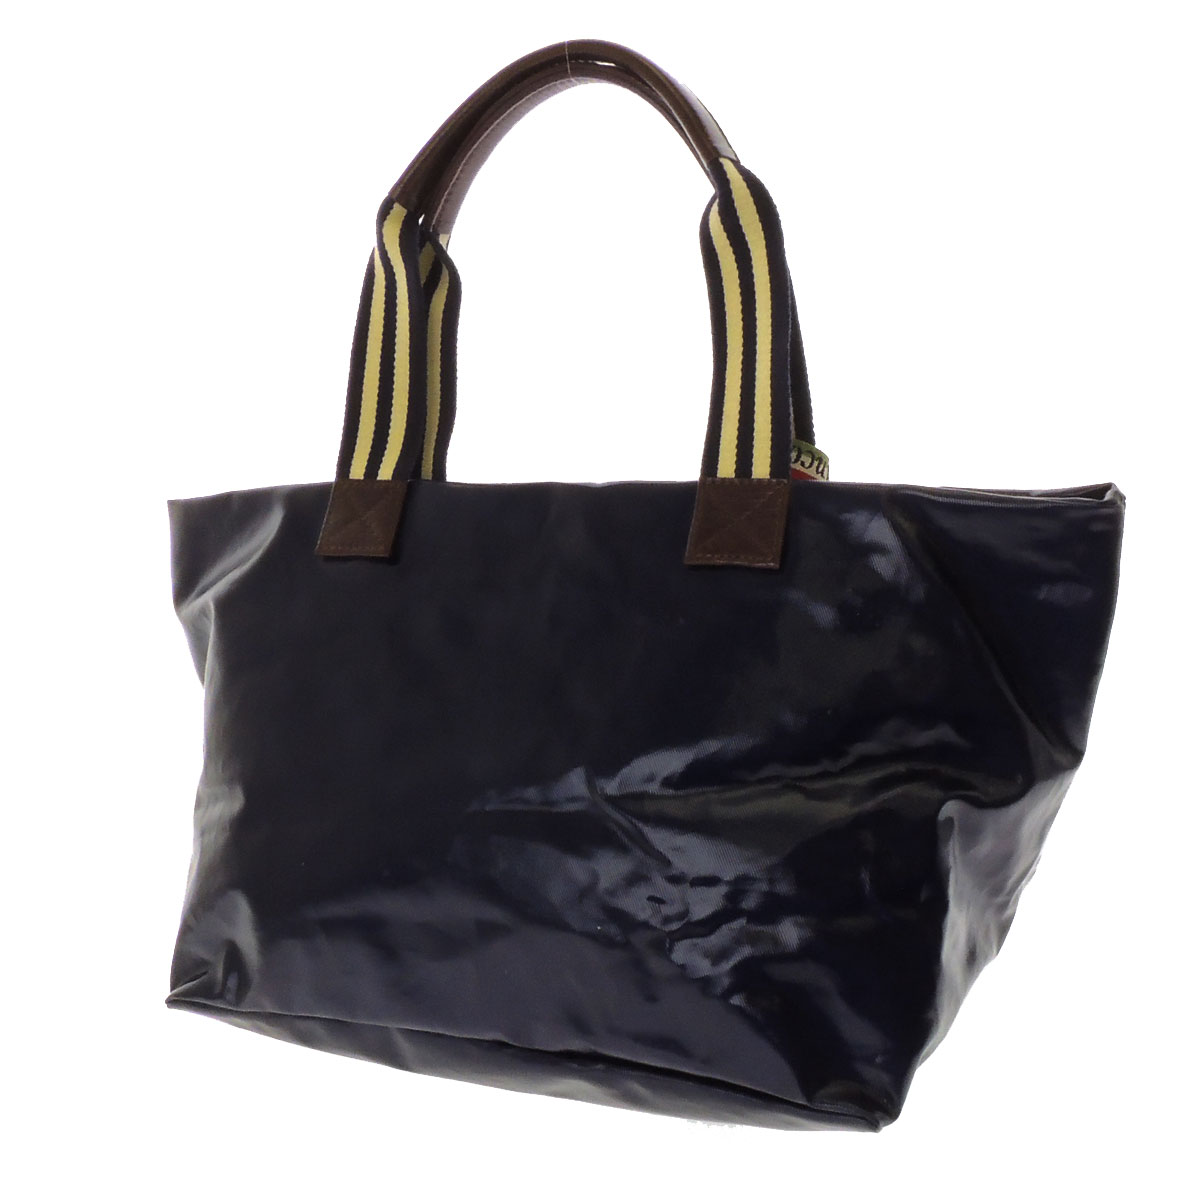 OROBIANCO slim with tote bag nylon x leather unisex